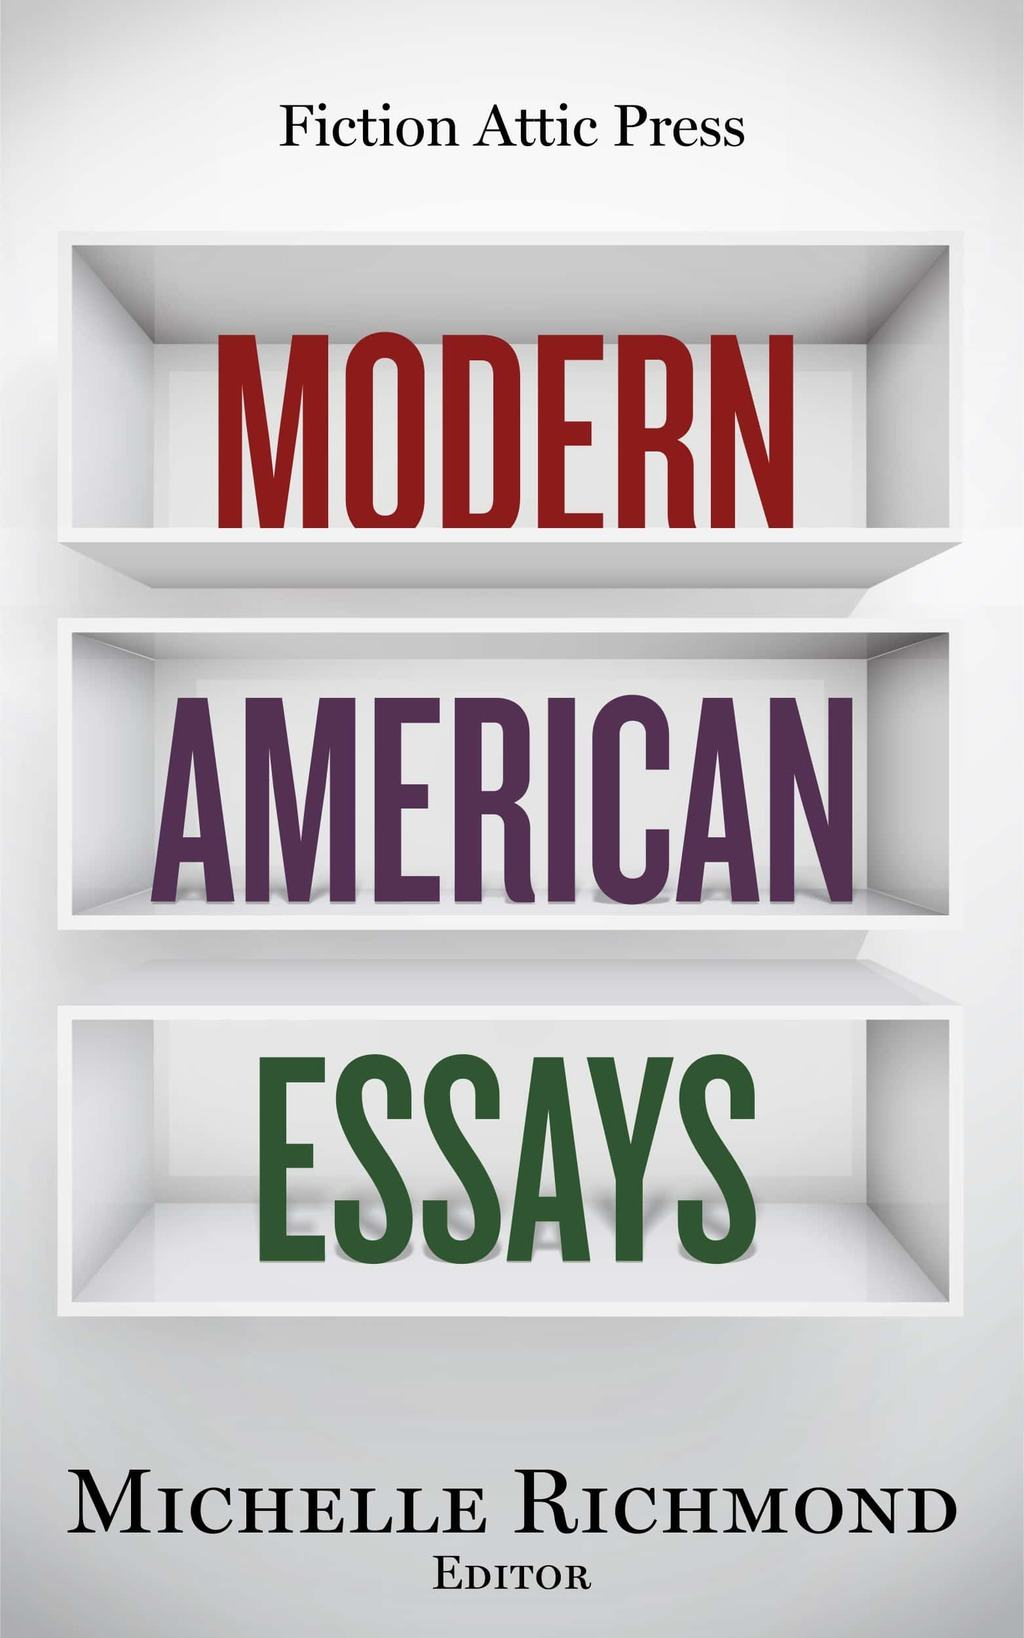 call for submissions essays stories novels fiction attic press modern american essays high resolution